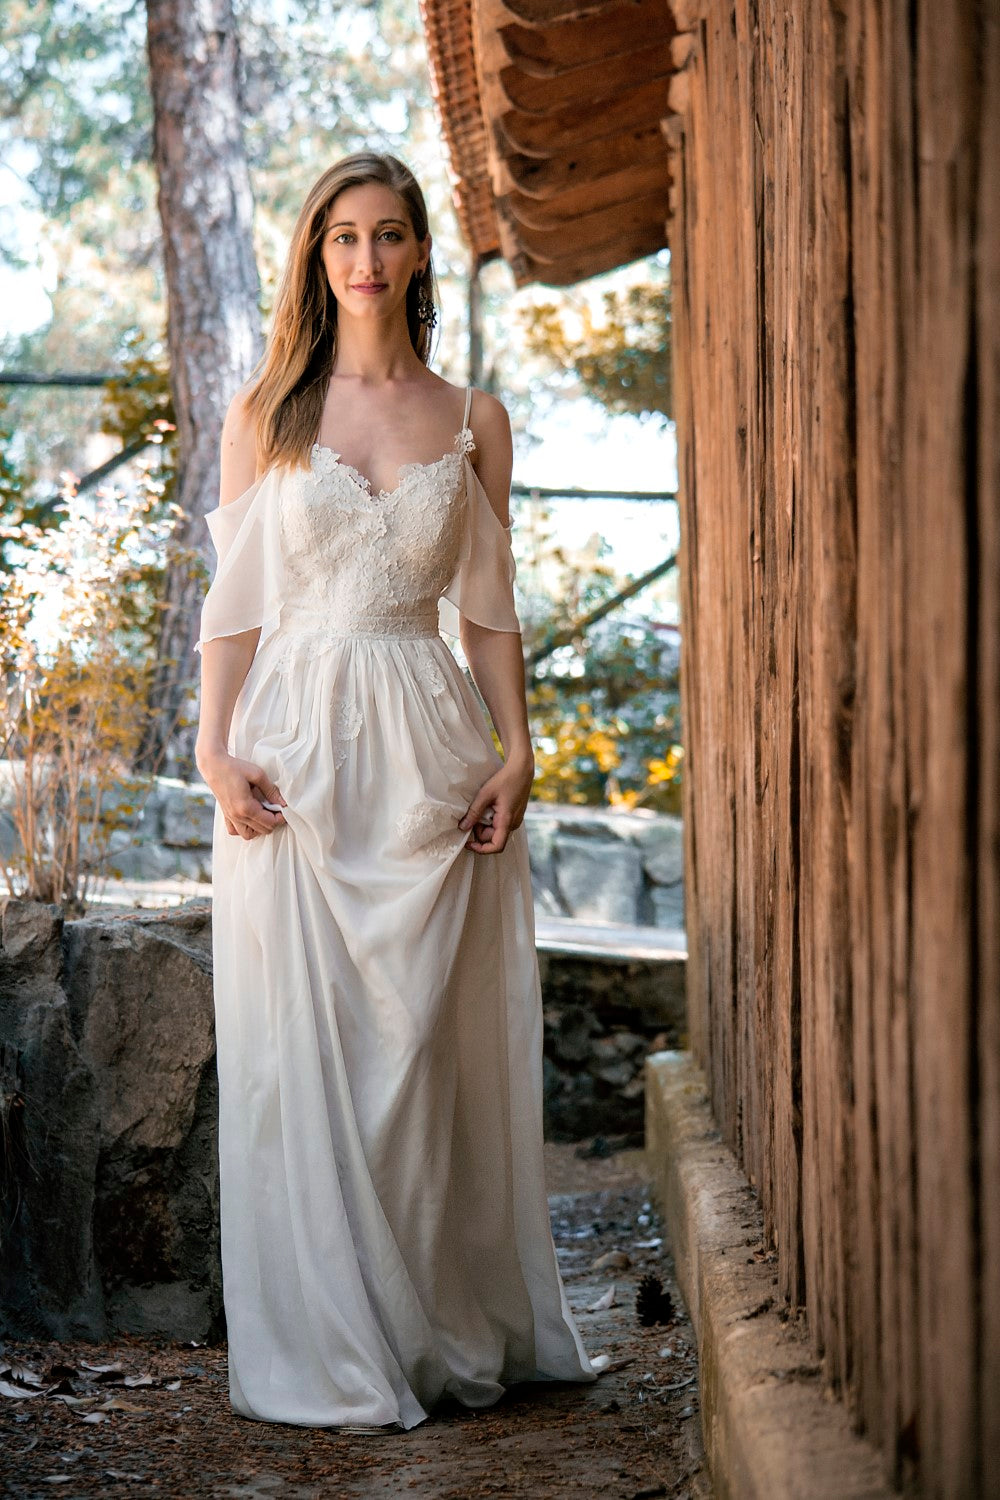 Erna Handmade Summer Beach Wedding Dress